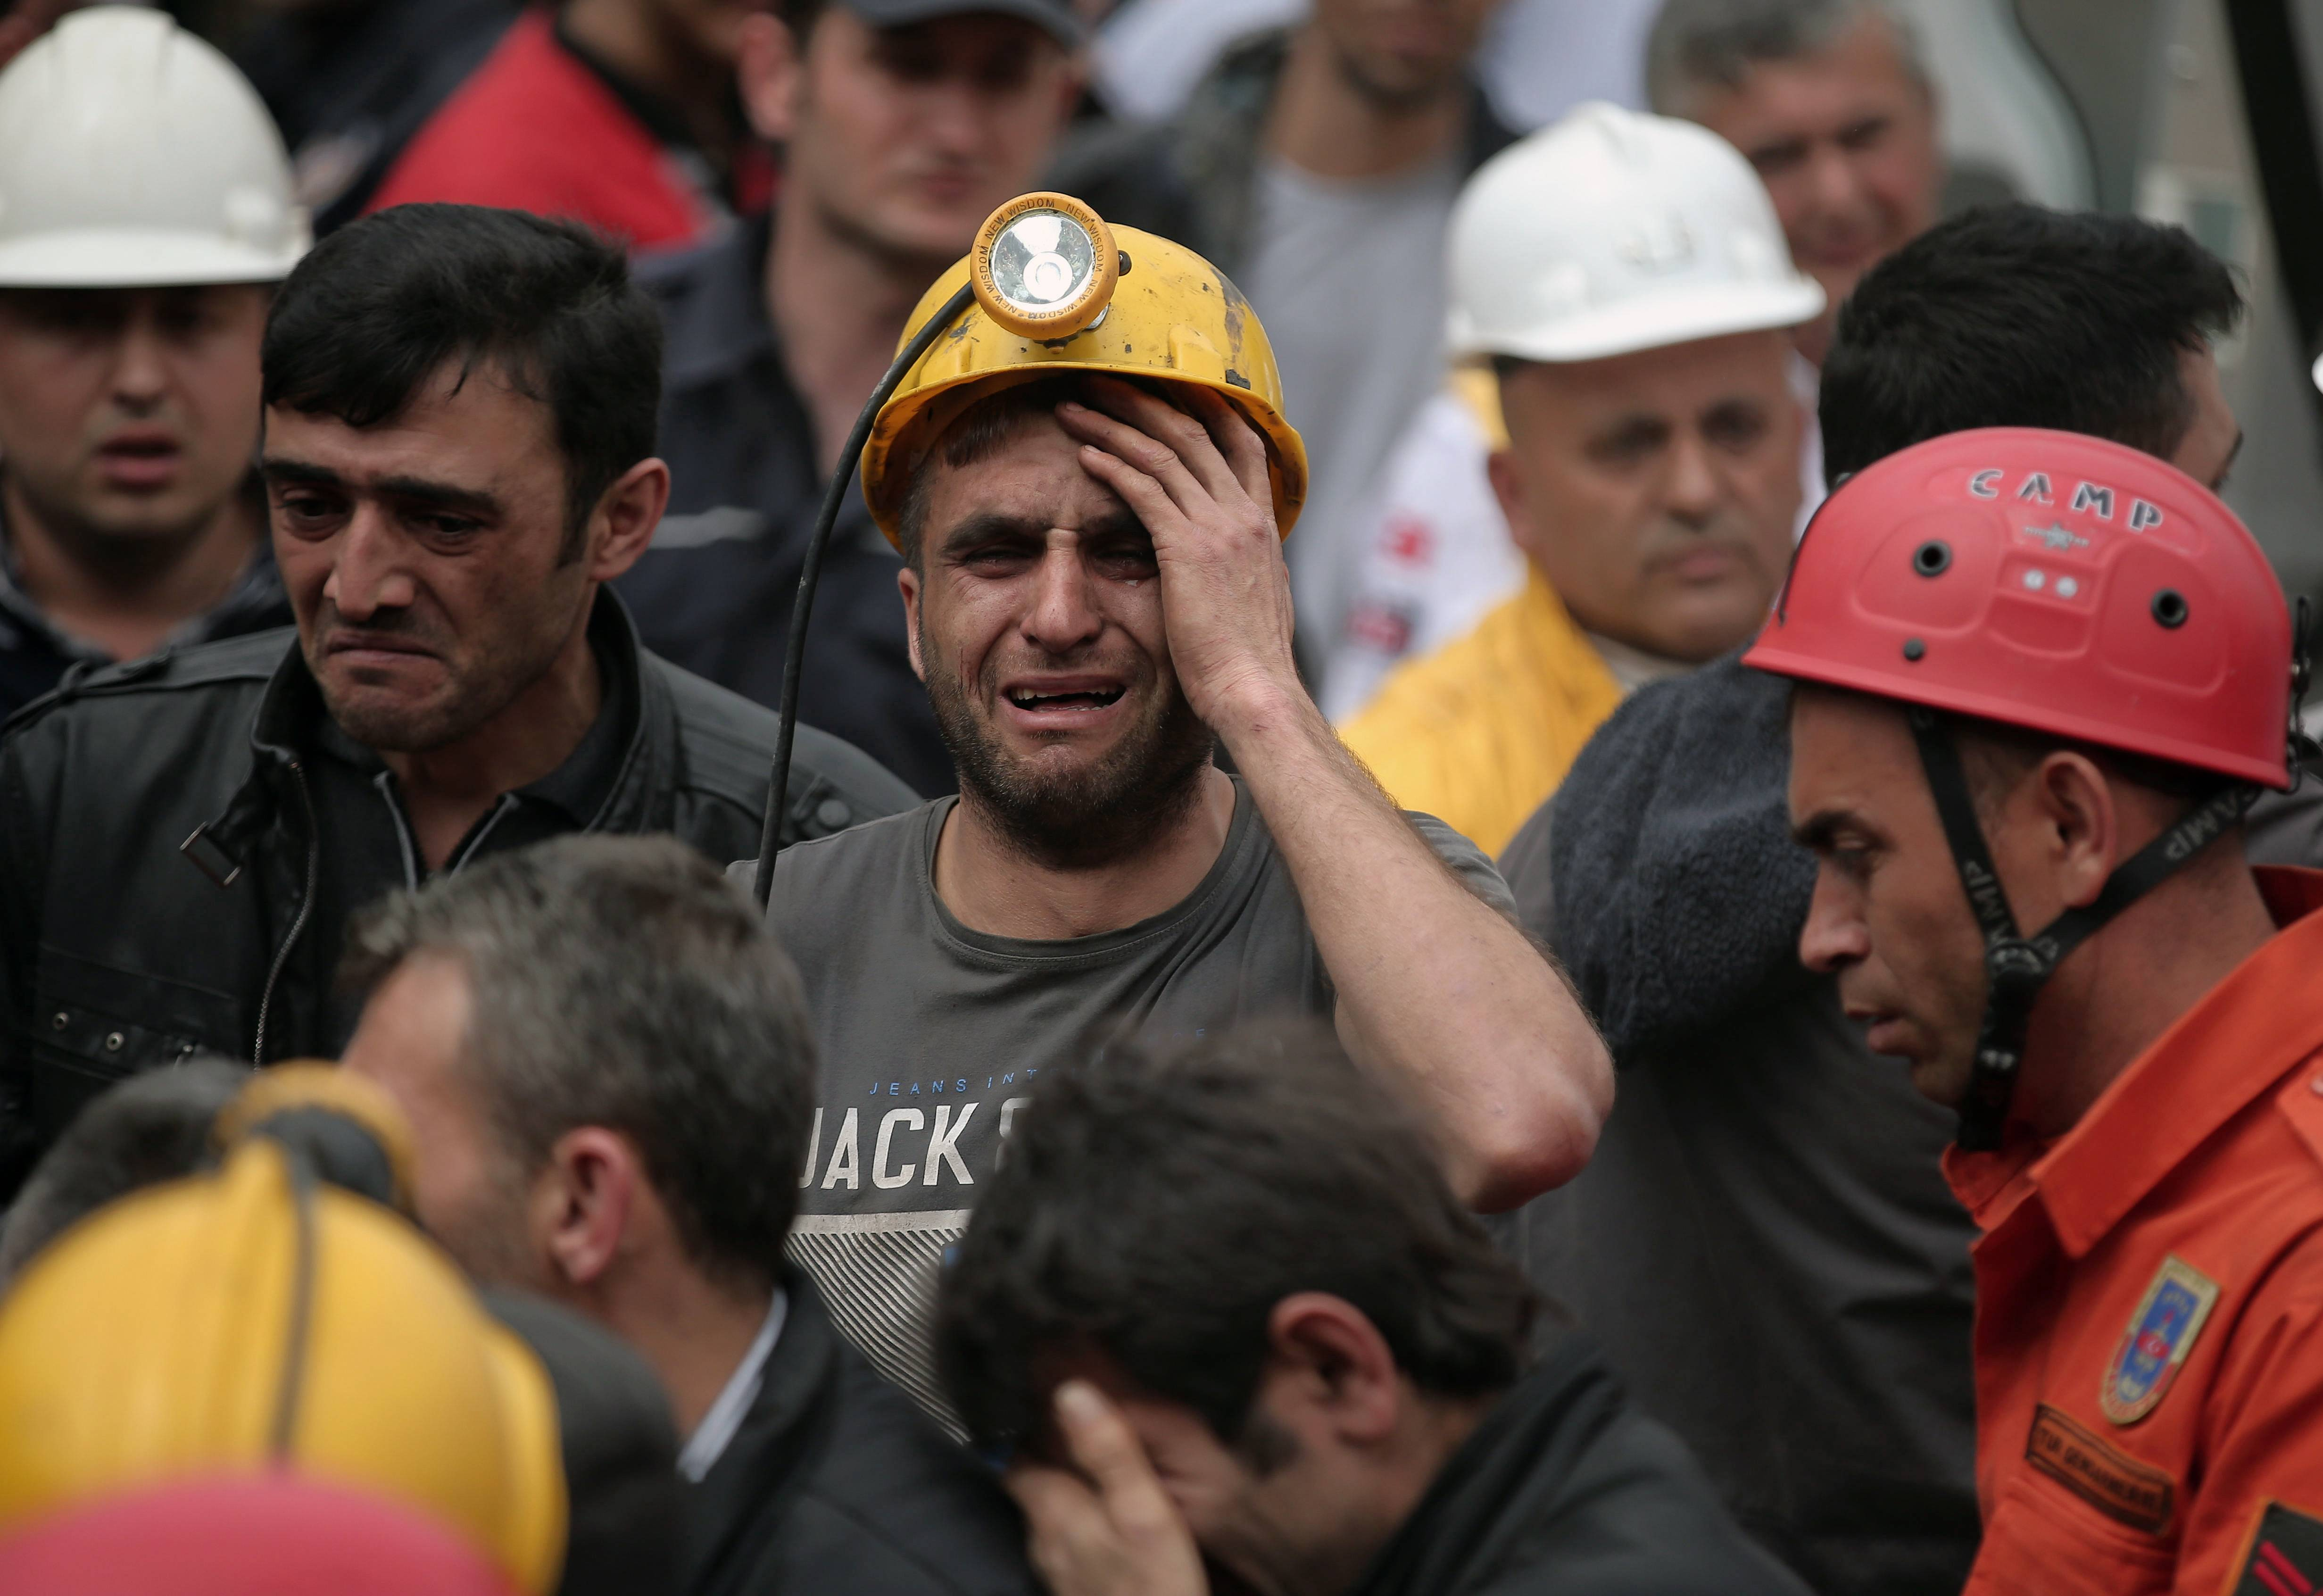 A miner cries as rescue workers carry the dead body of a miner from the mine in Soma, western Turkey, Wednesday, . An explosion and fire at the coal mine killed at least 238 workers, authorities said, in one of the worst mining disasters in Turkish history.